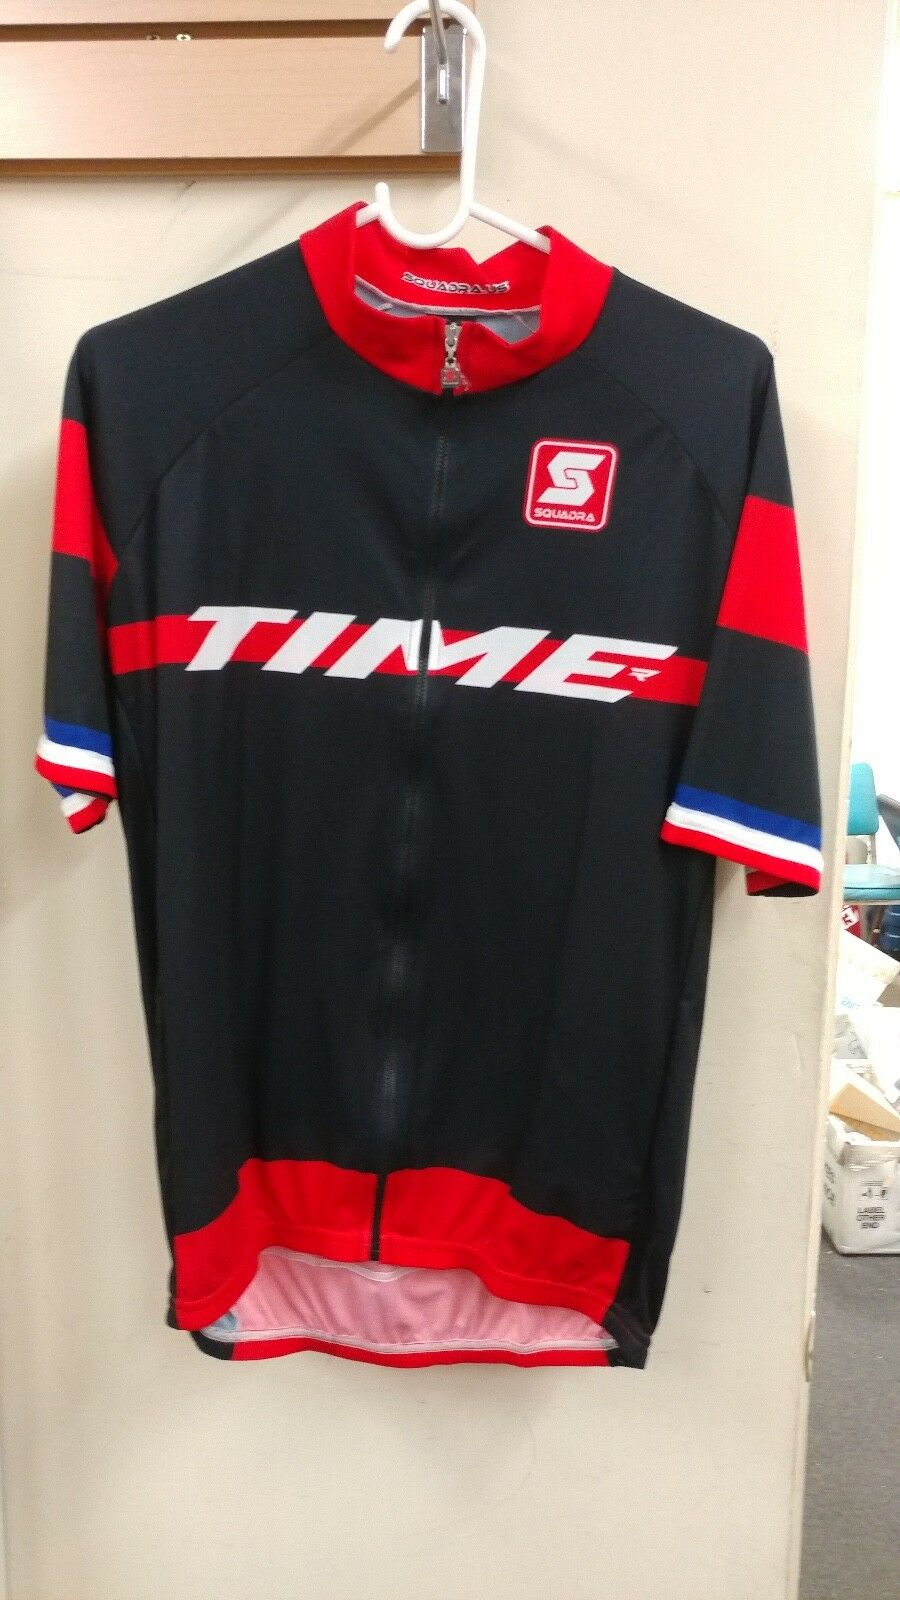 MEN'S TIME SPORT CYCLING JERSEY FULL ZIP NEW WITHOUT TAGS SIZES, MD, LG, XL